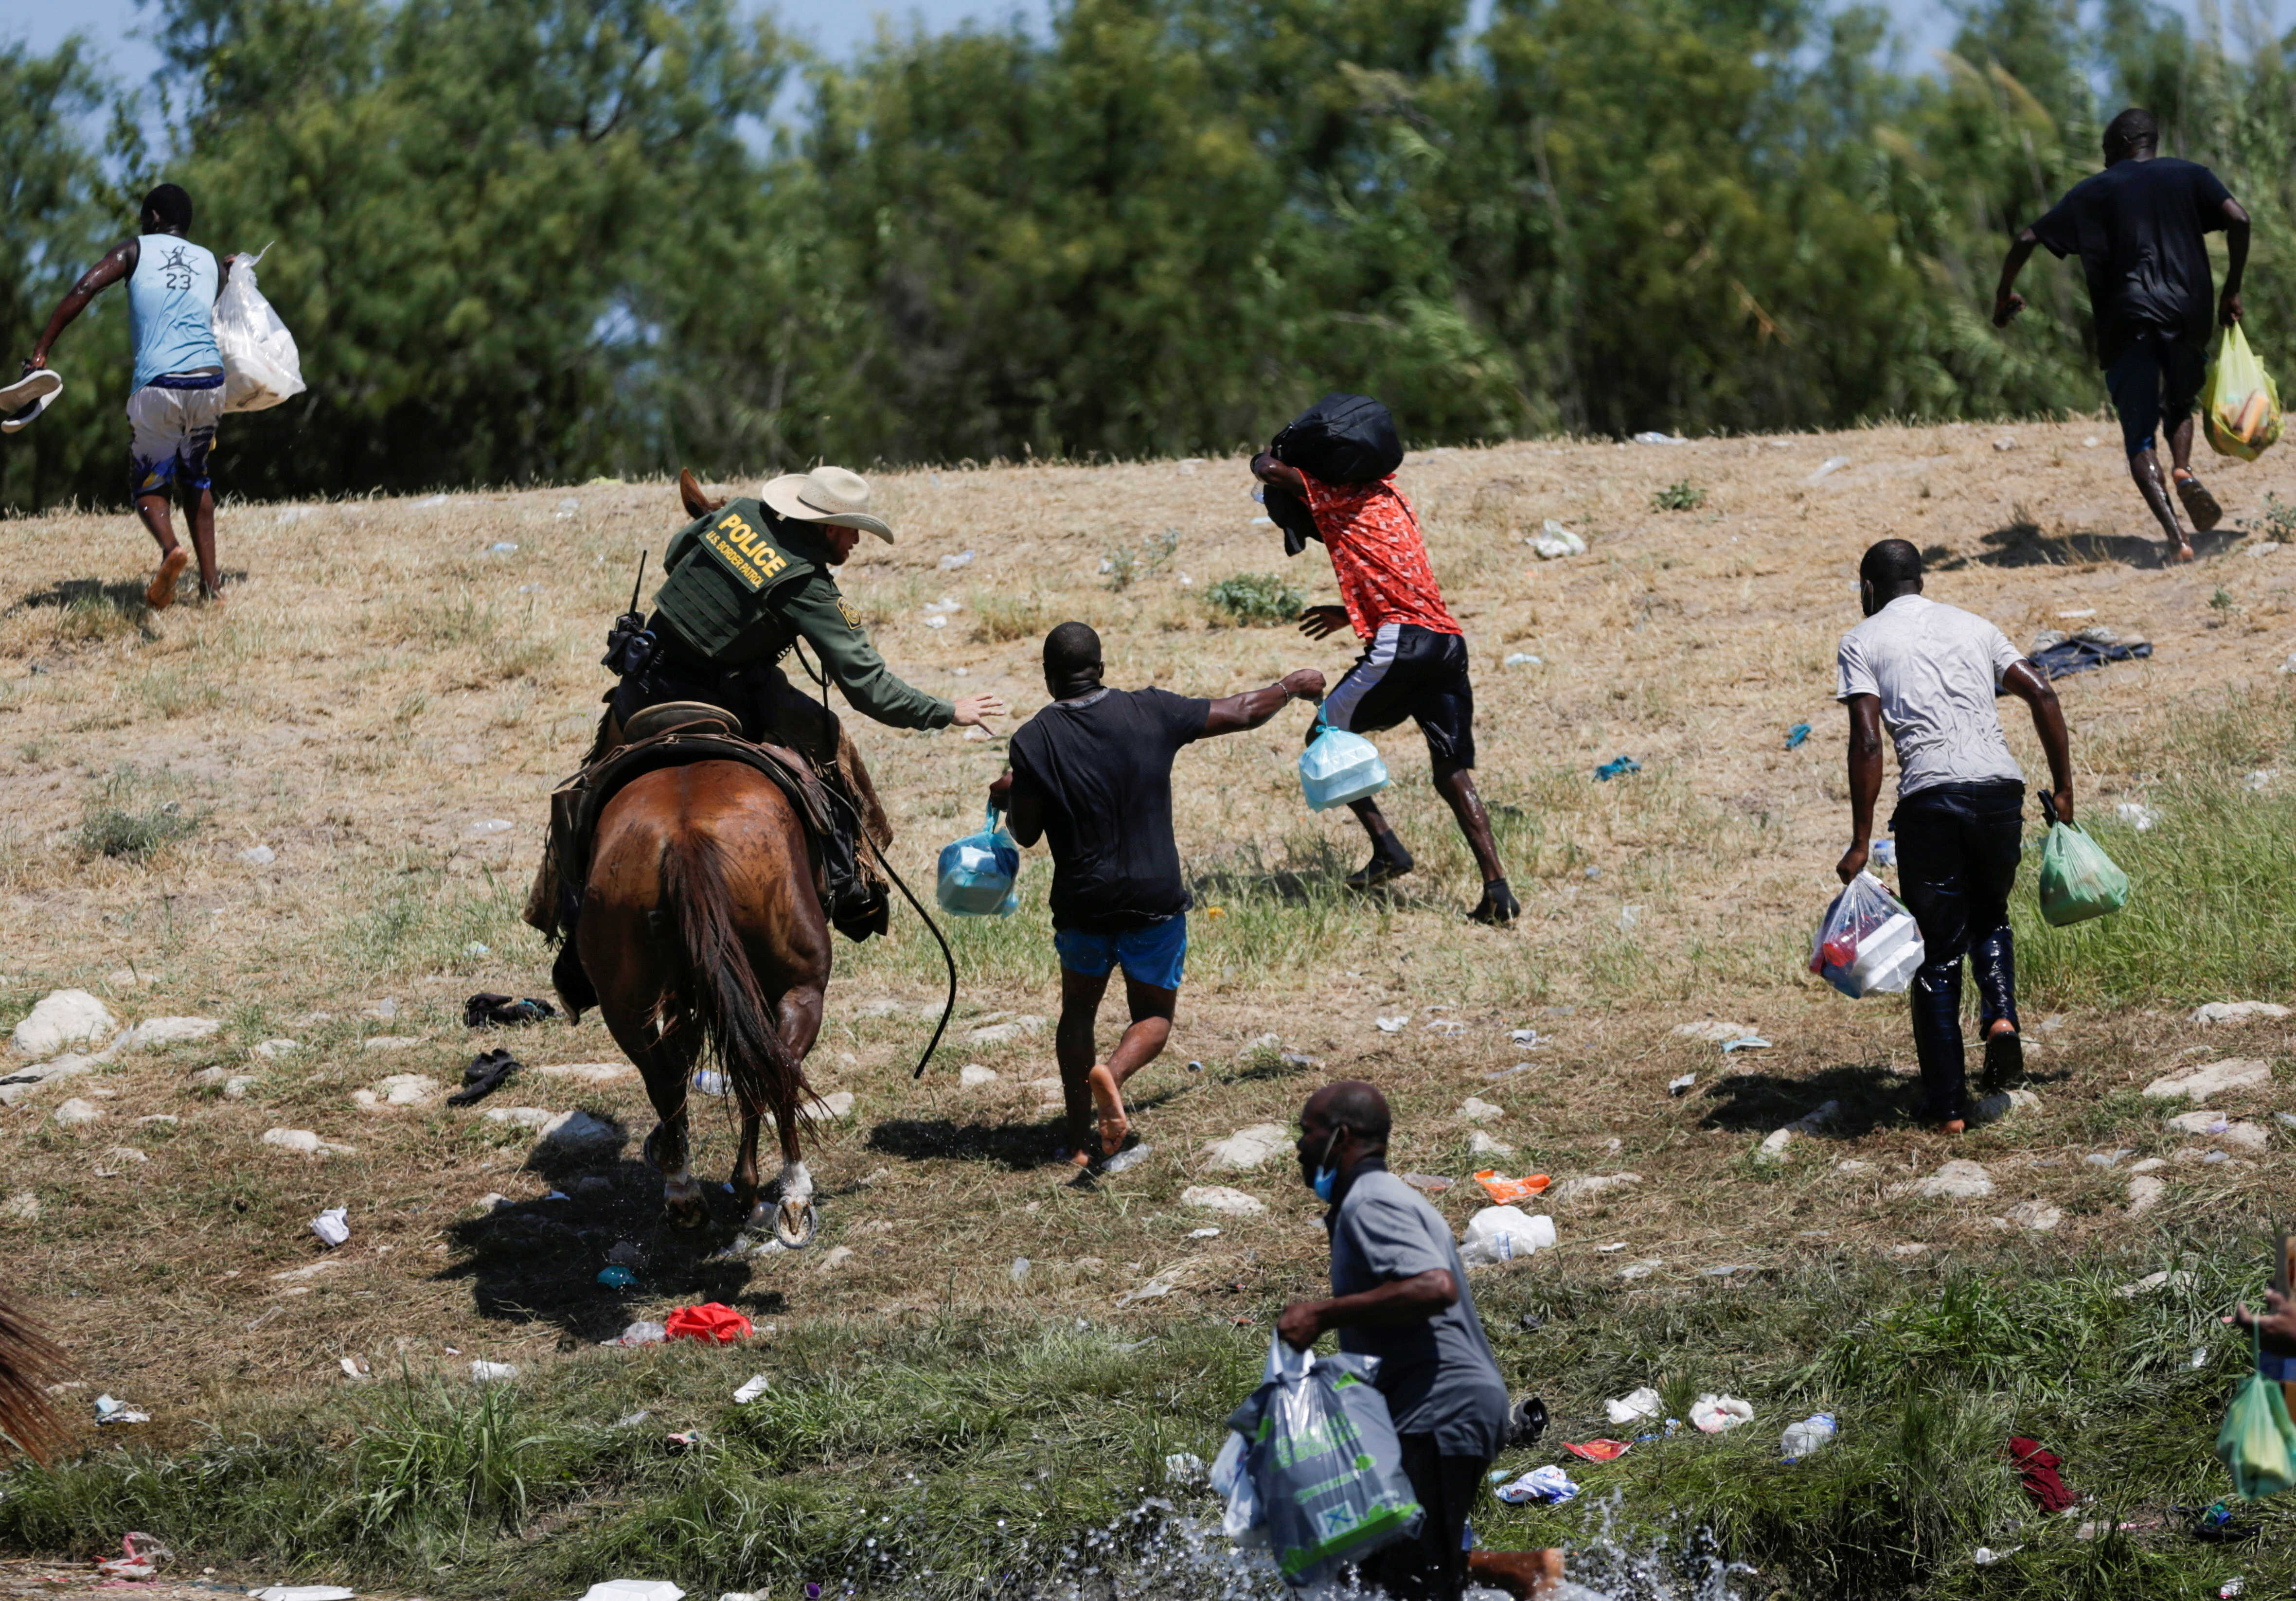 A U.S. law enforcement officer on horseback chases migrants returning to the United States after buying food in Mexico, as seen from Ciudad Acuna, Mexico September 19, 2021. Picture taken September 19, 2021. REUTERS/Daniel Becerril